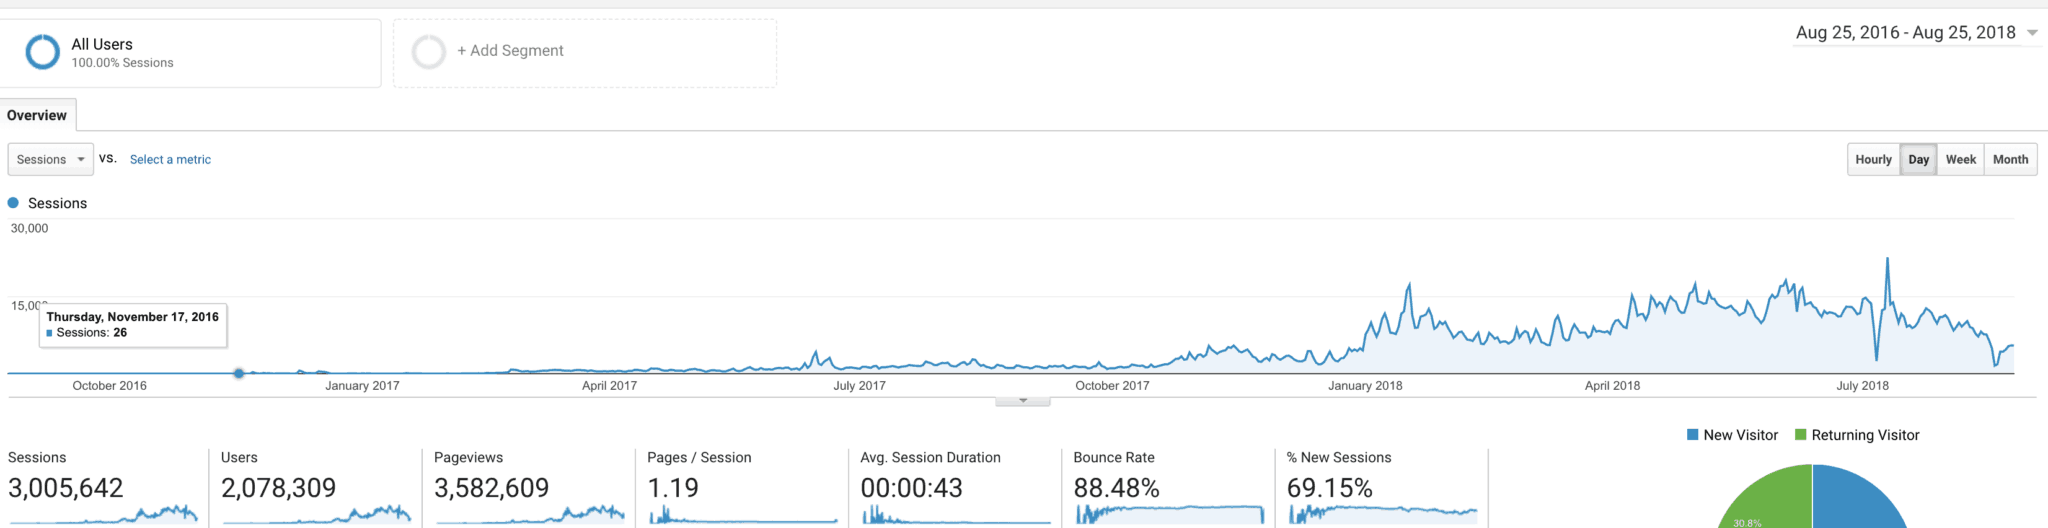 How to Get your Blog Noticed: 40+ Tips for 3 Million Views in 2 Years